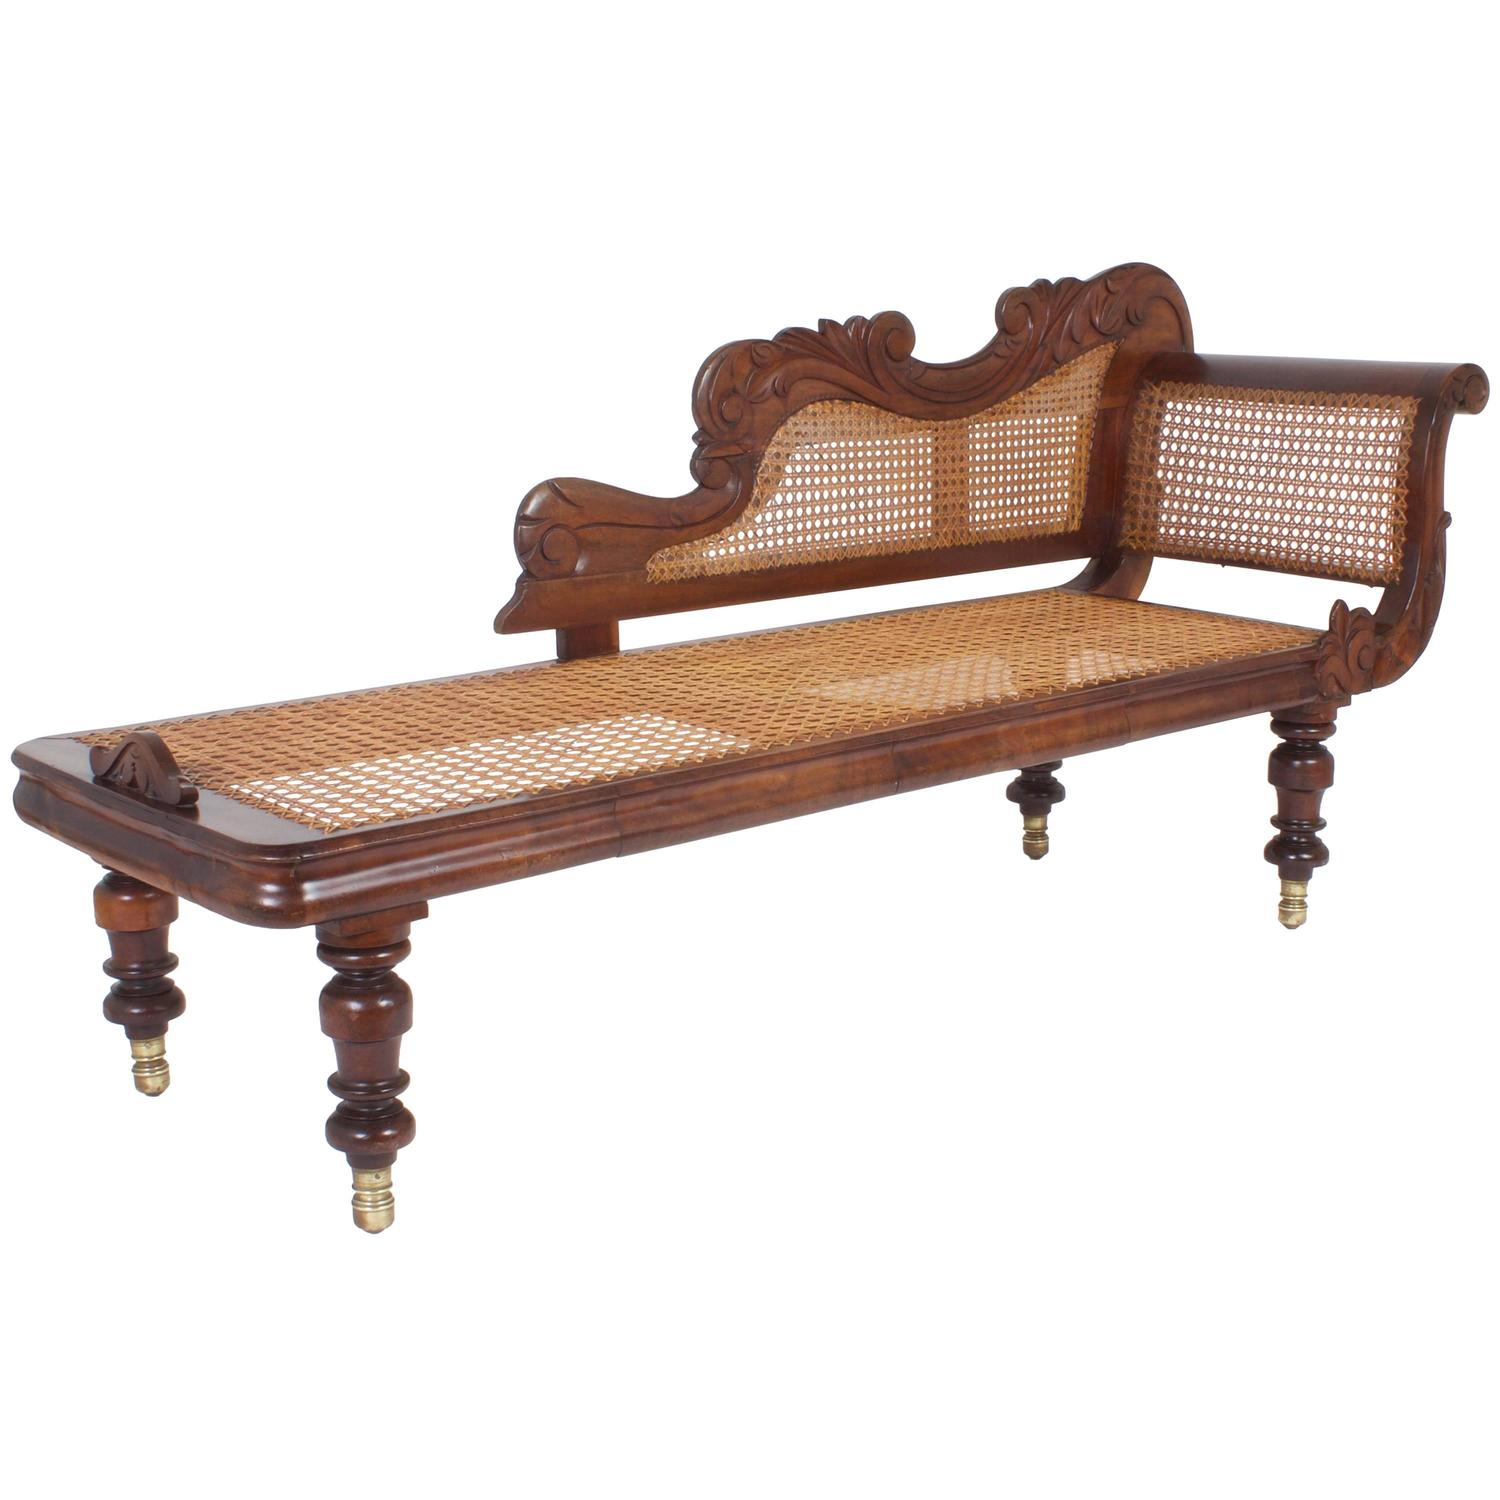 British colonial mahogany antique chaise longue at 1stdibs for Antique wooden chaise lounge